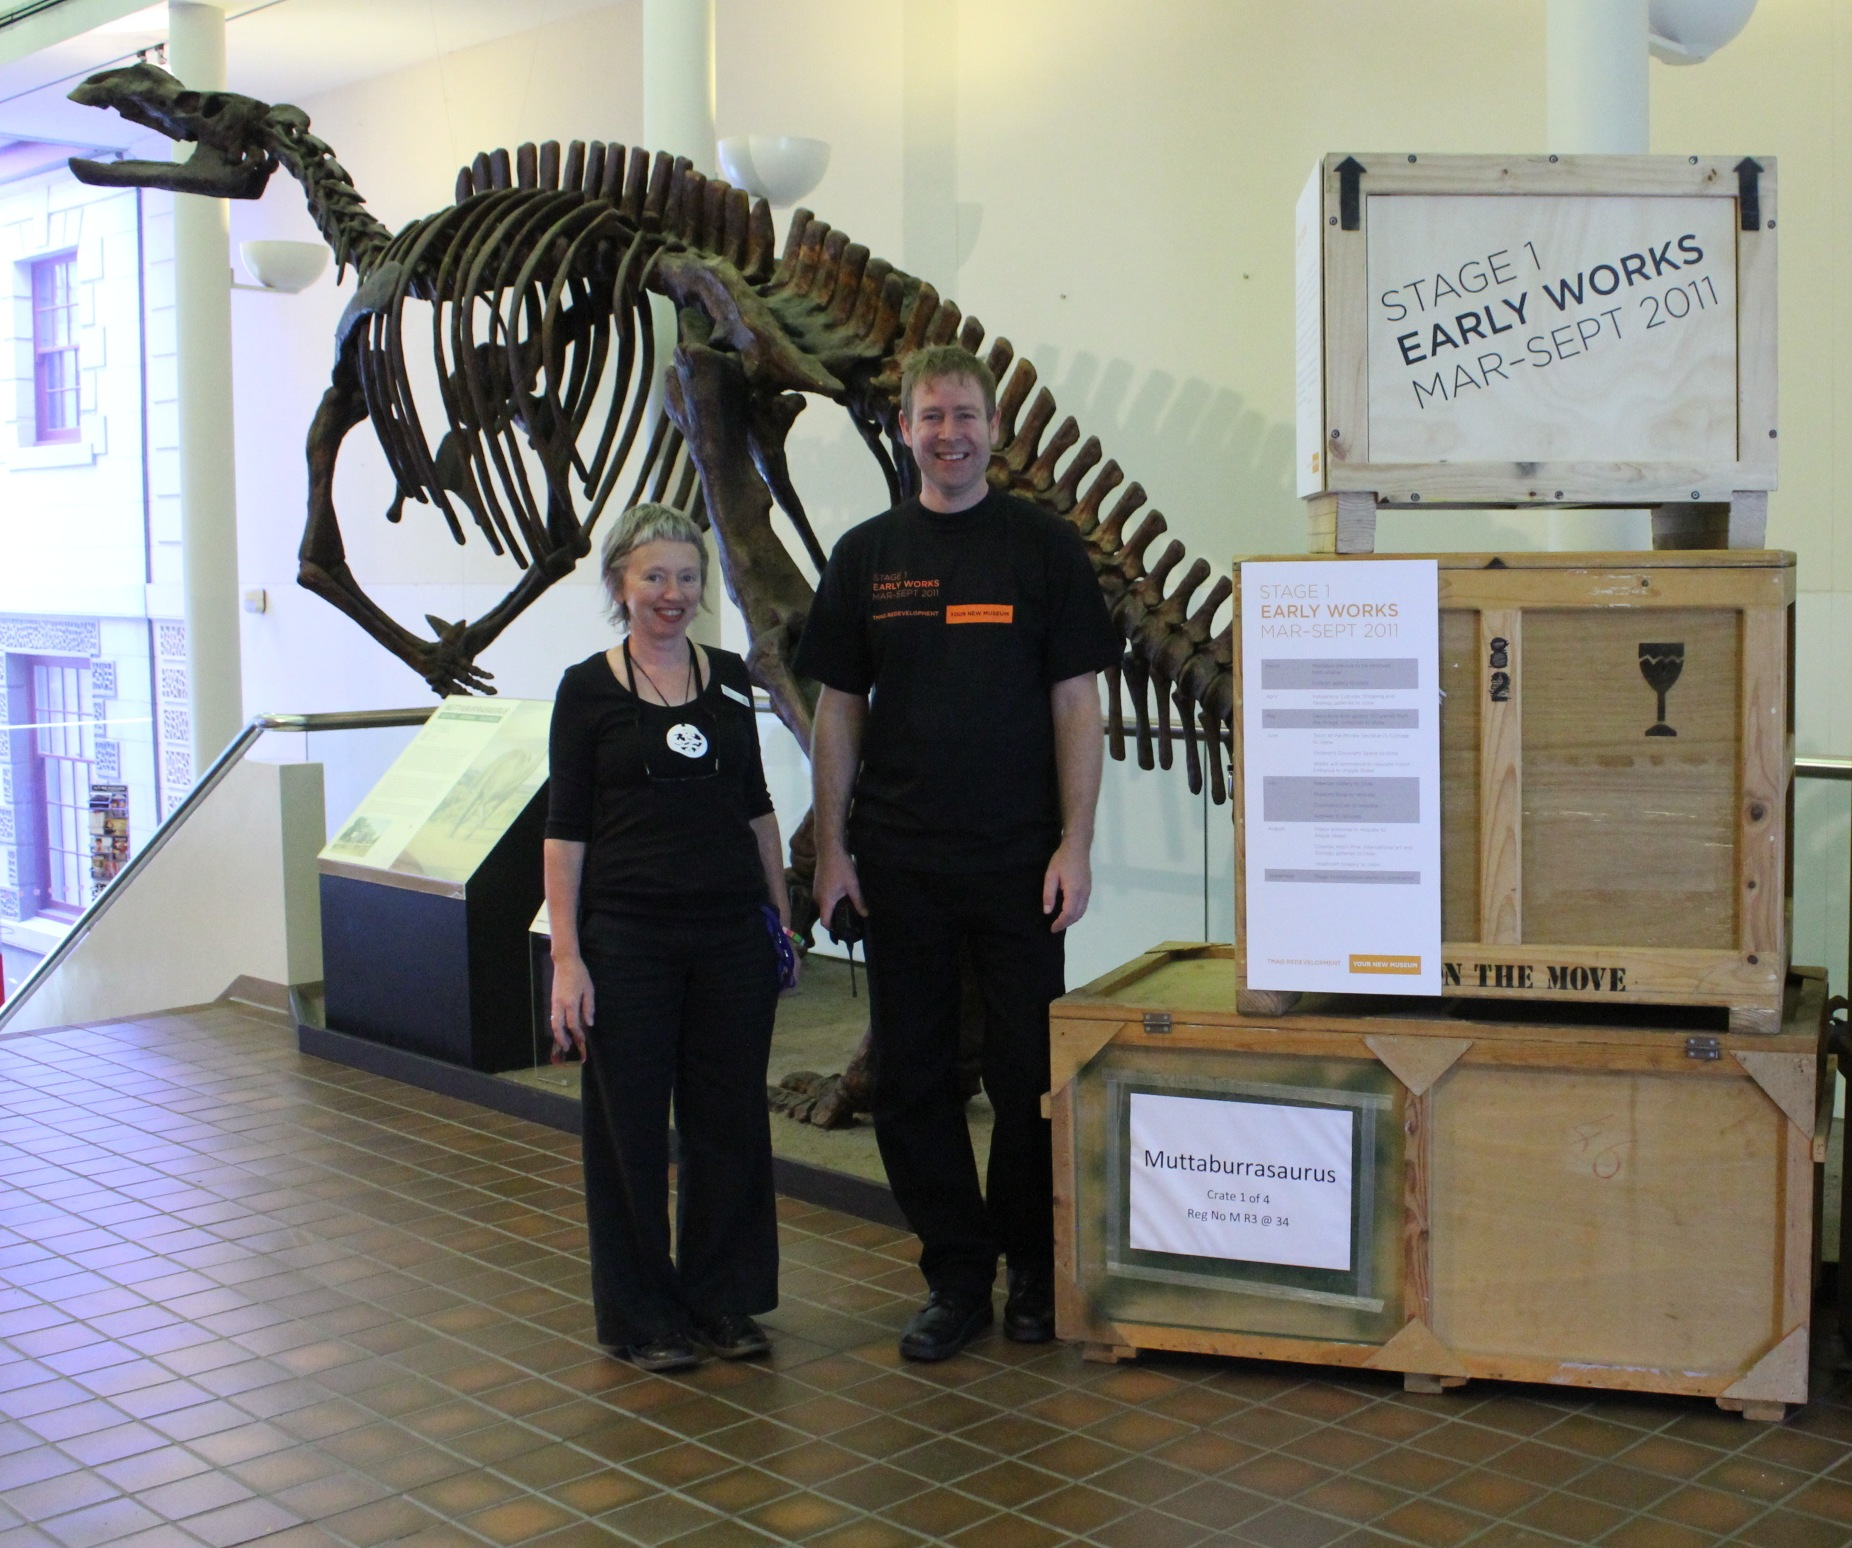 Penny and Matt with our beloved muttaburrasaurus